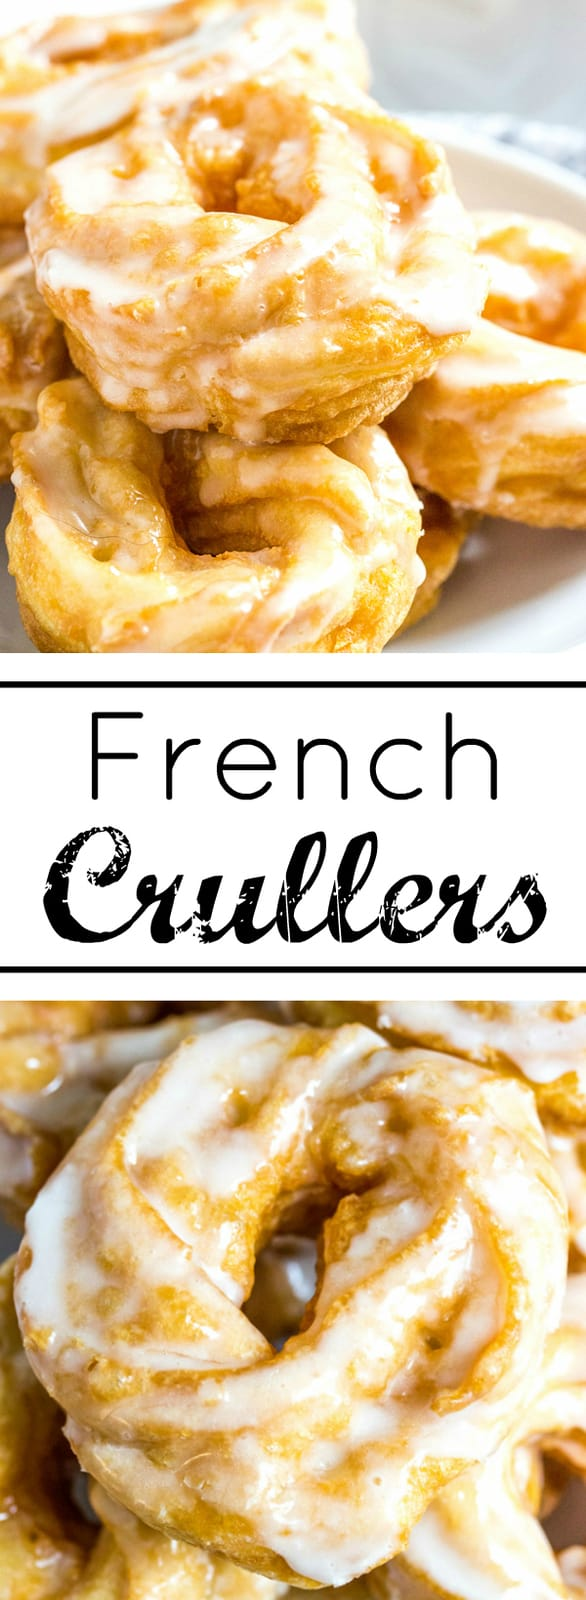 French Crullers - Tornadough Alli